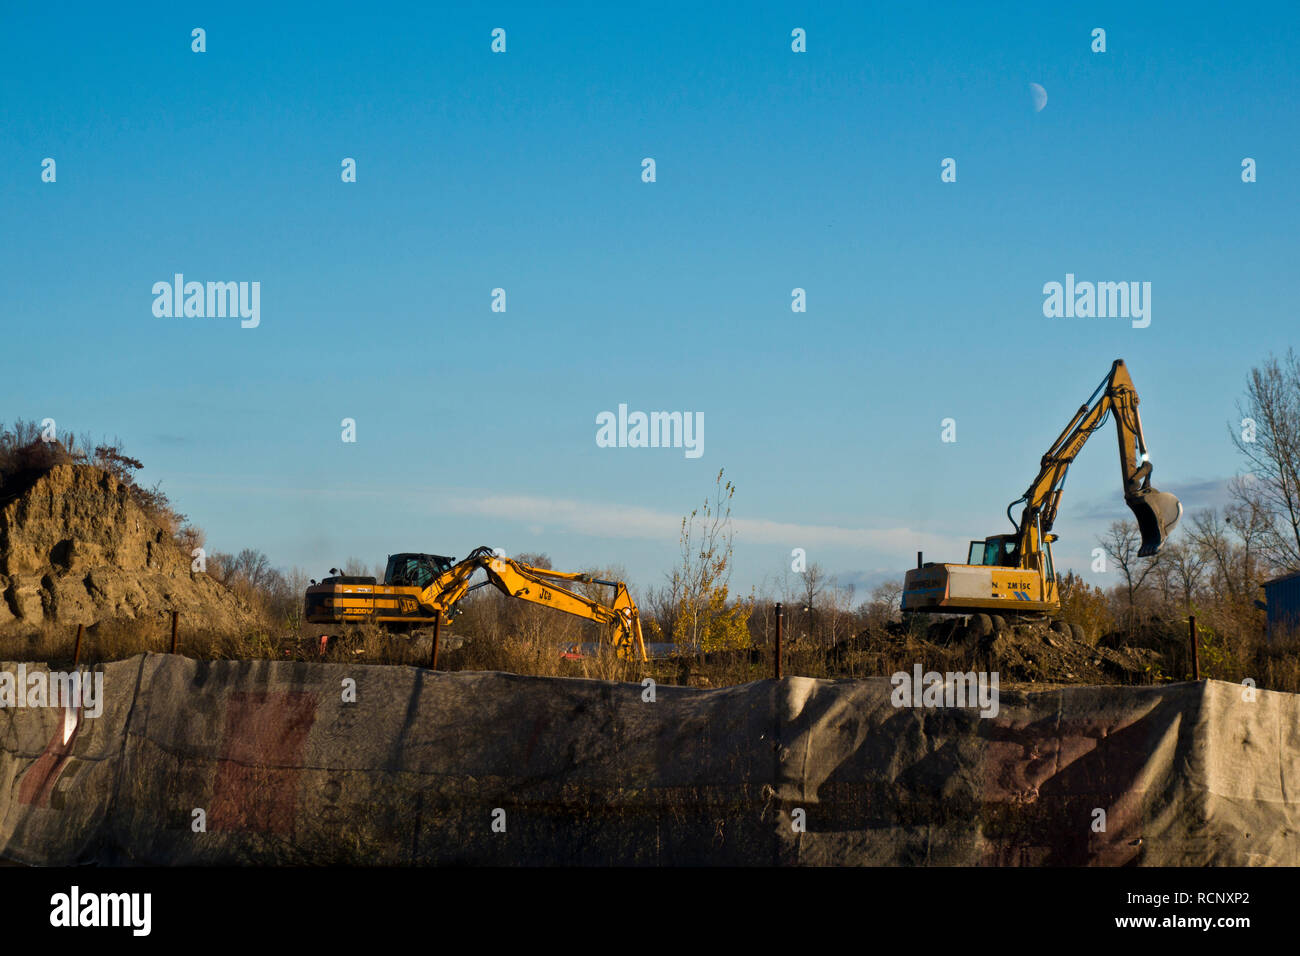 excavators at a construction site, excavating the ground - Stock Image